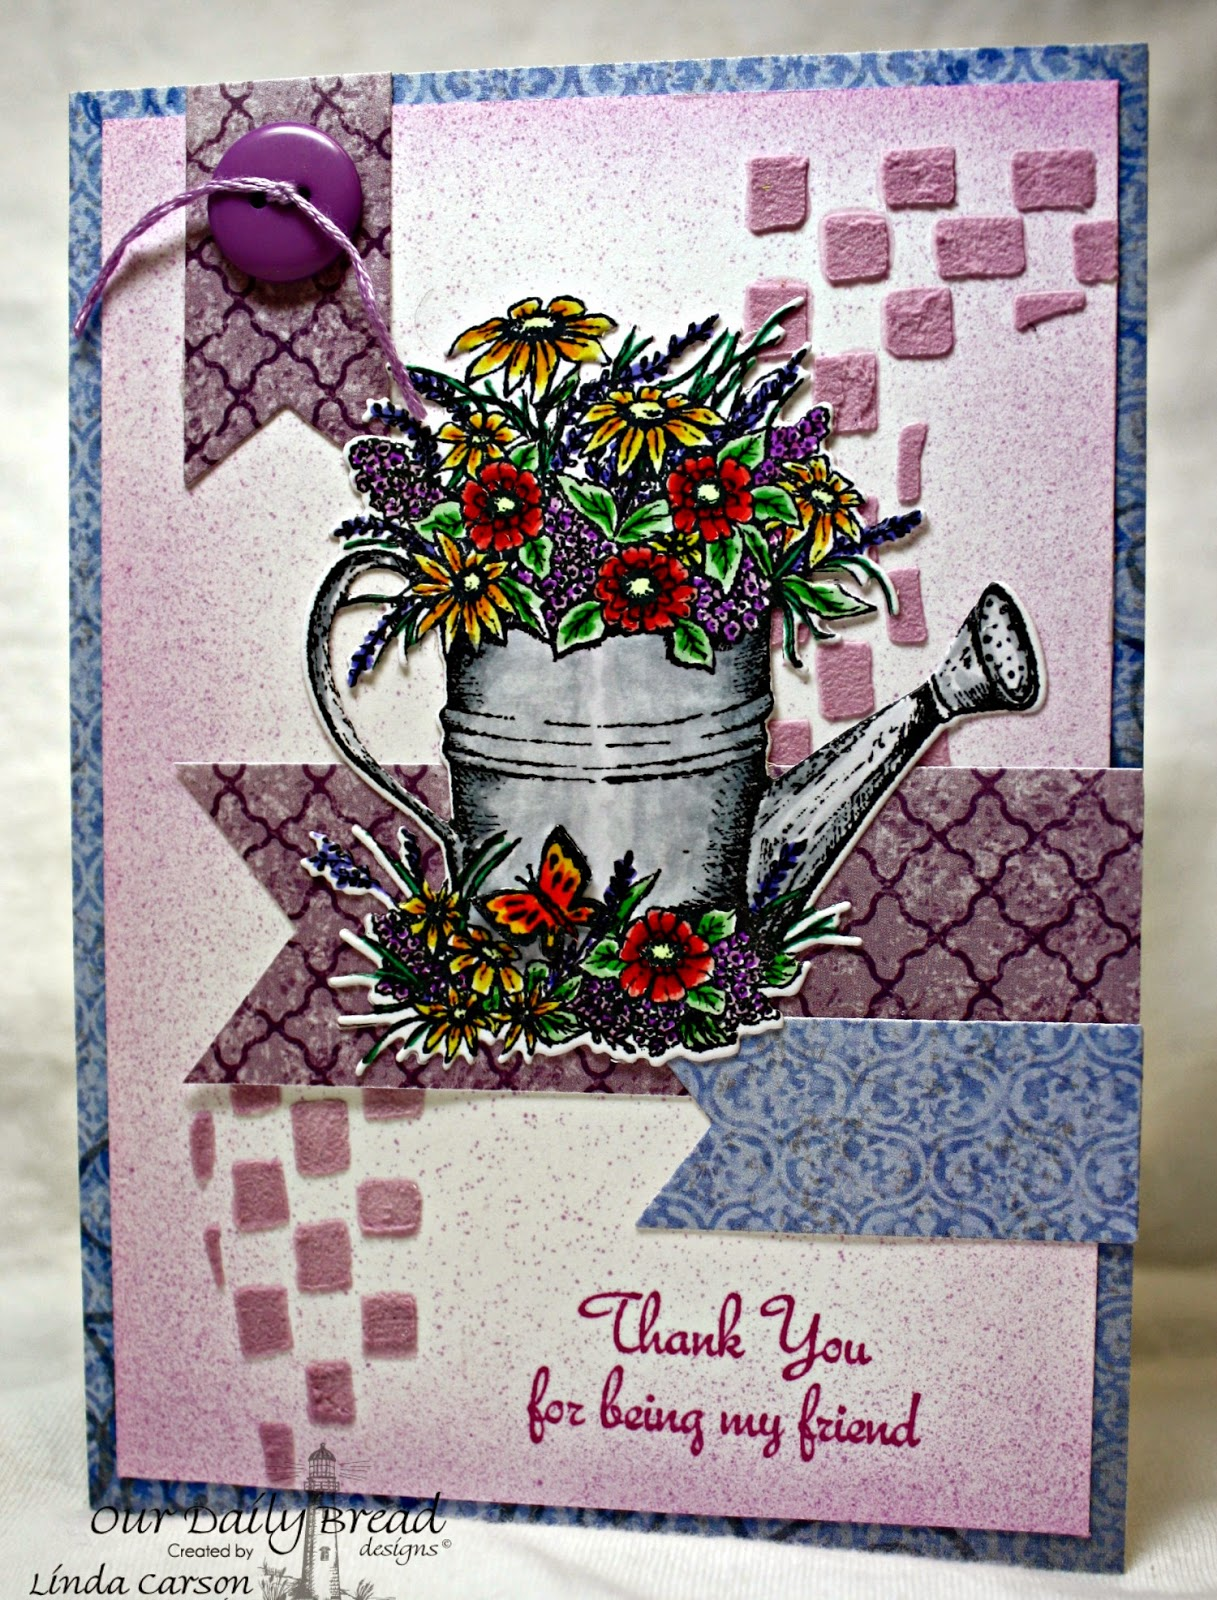 Our Daily Bread Designs, My Friend, Happy Birthday, Watering Can die, Pennant die, Christian Faith Collection, designer Linda Carson